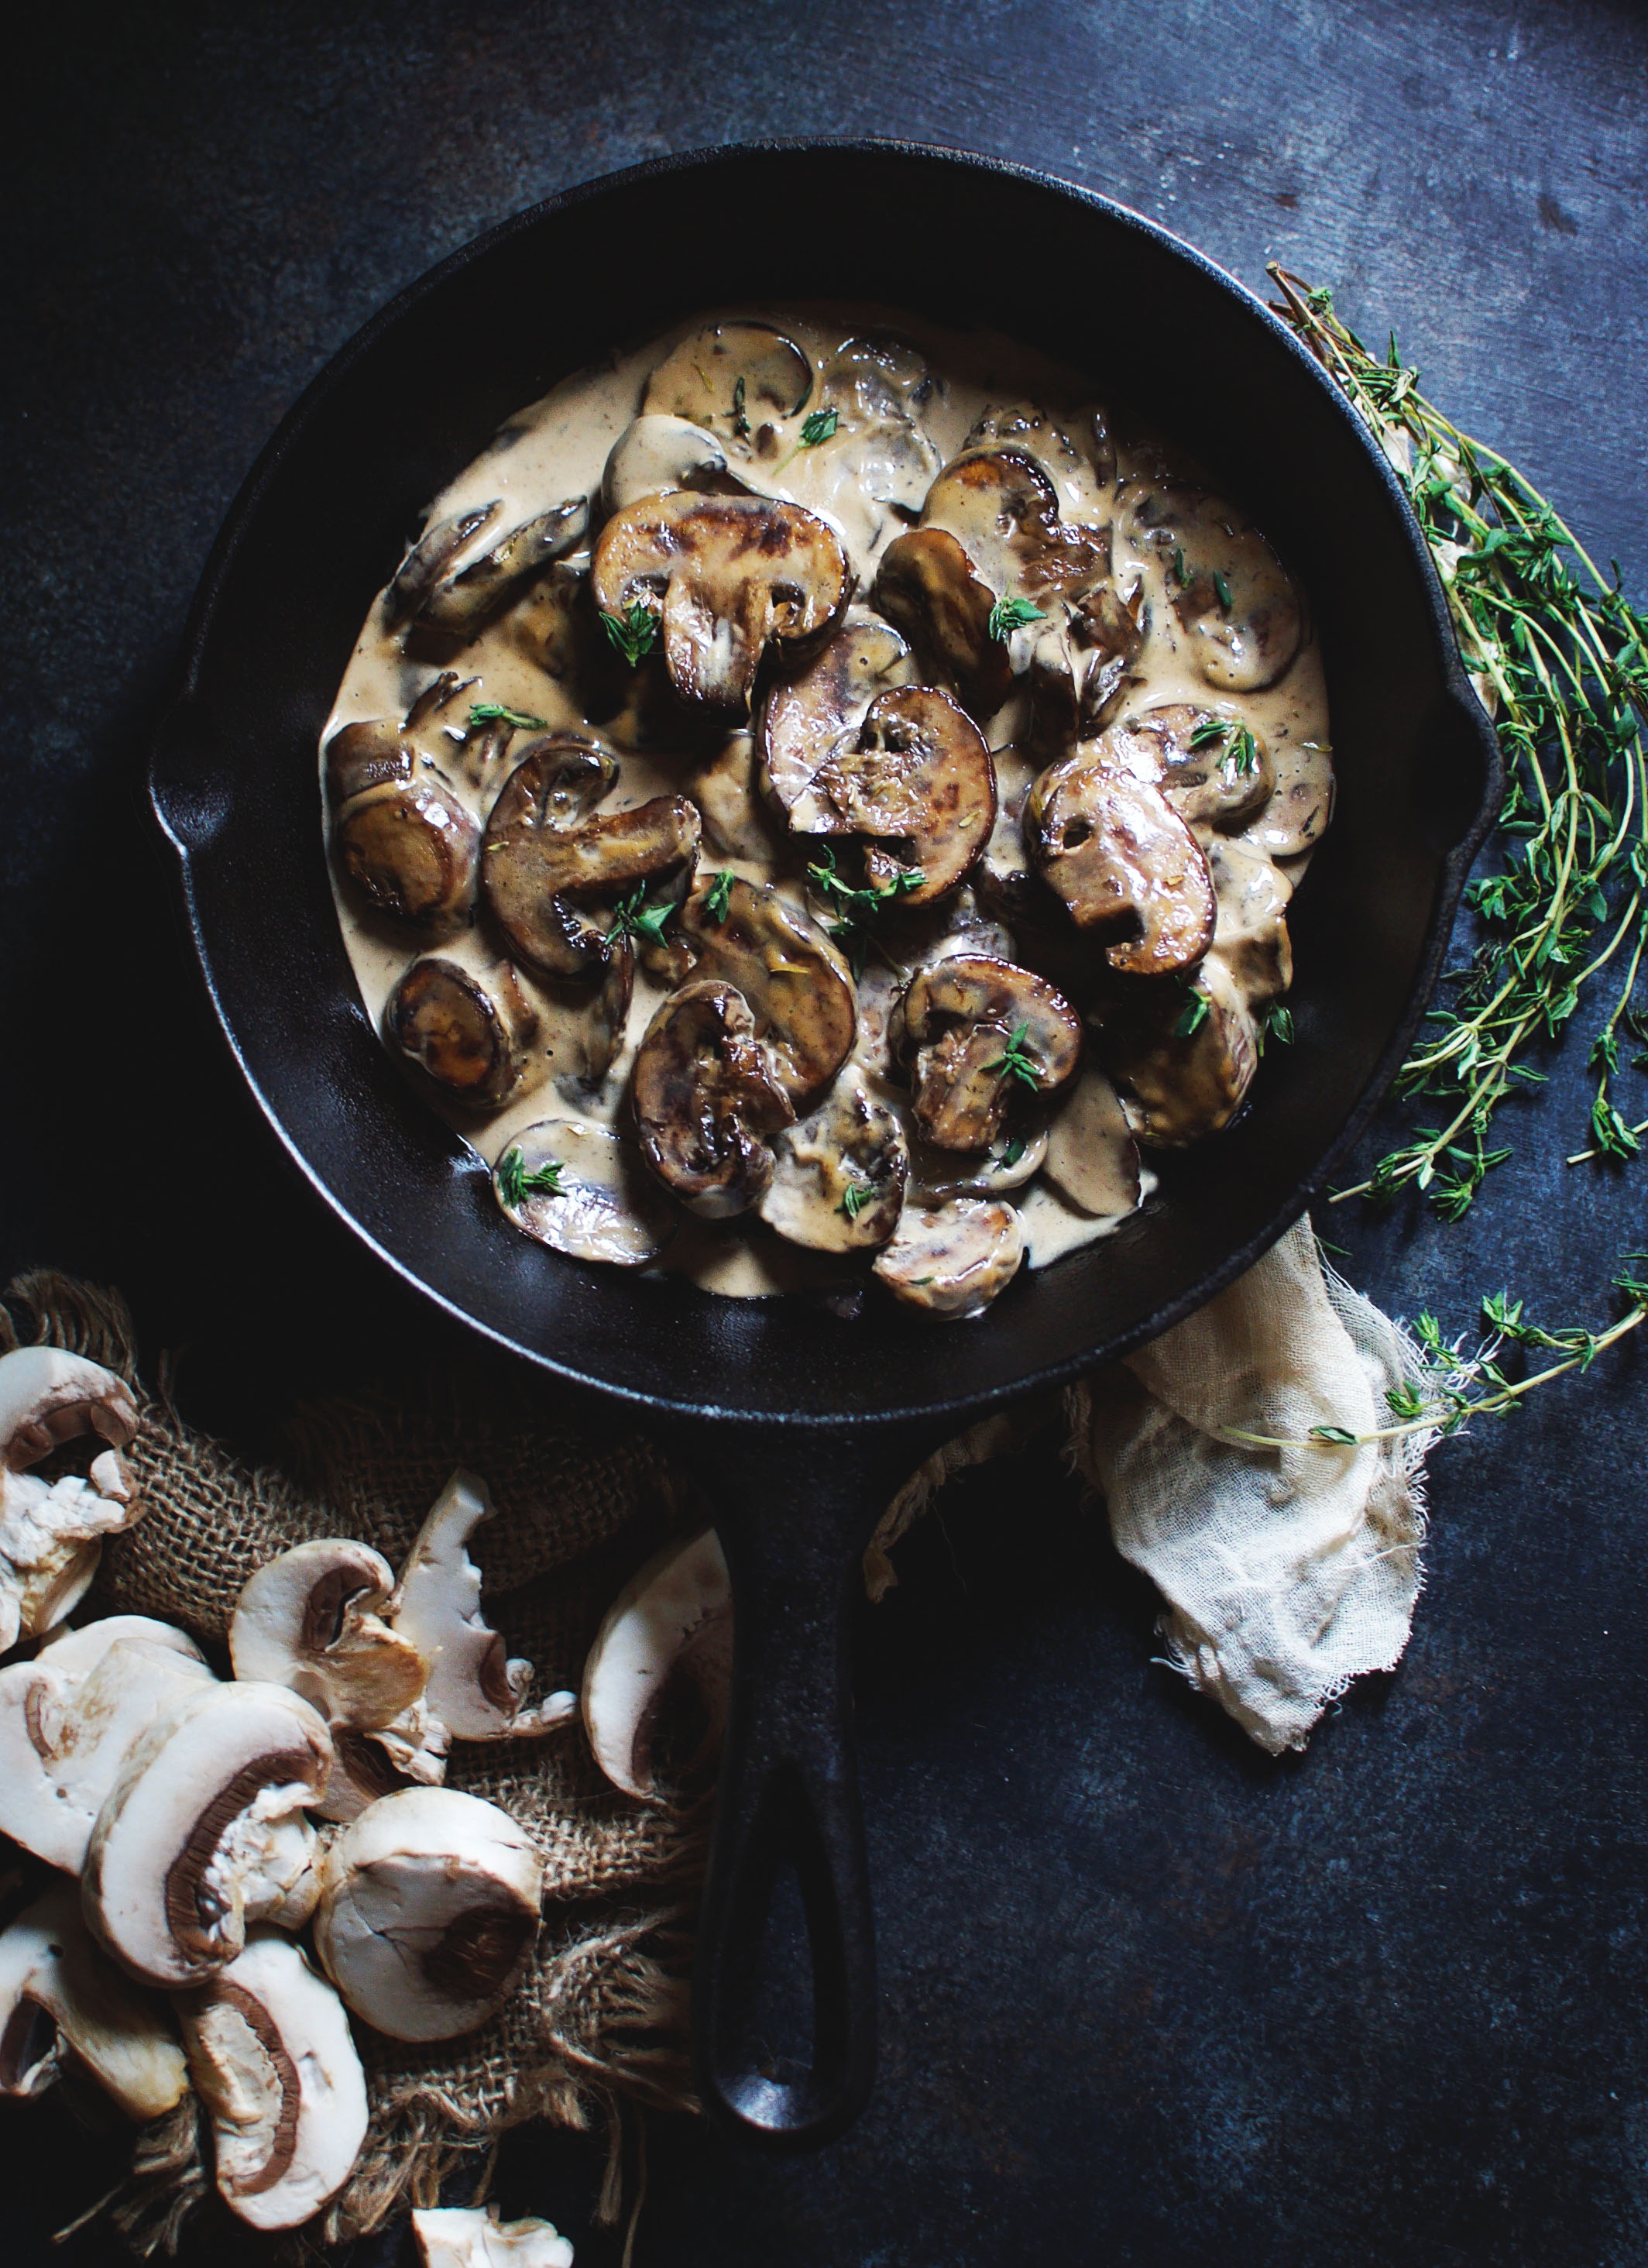 Mashed Cauliflower with Mushroom Gravy